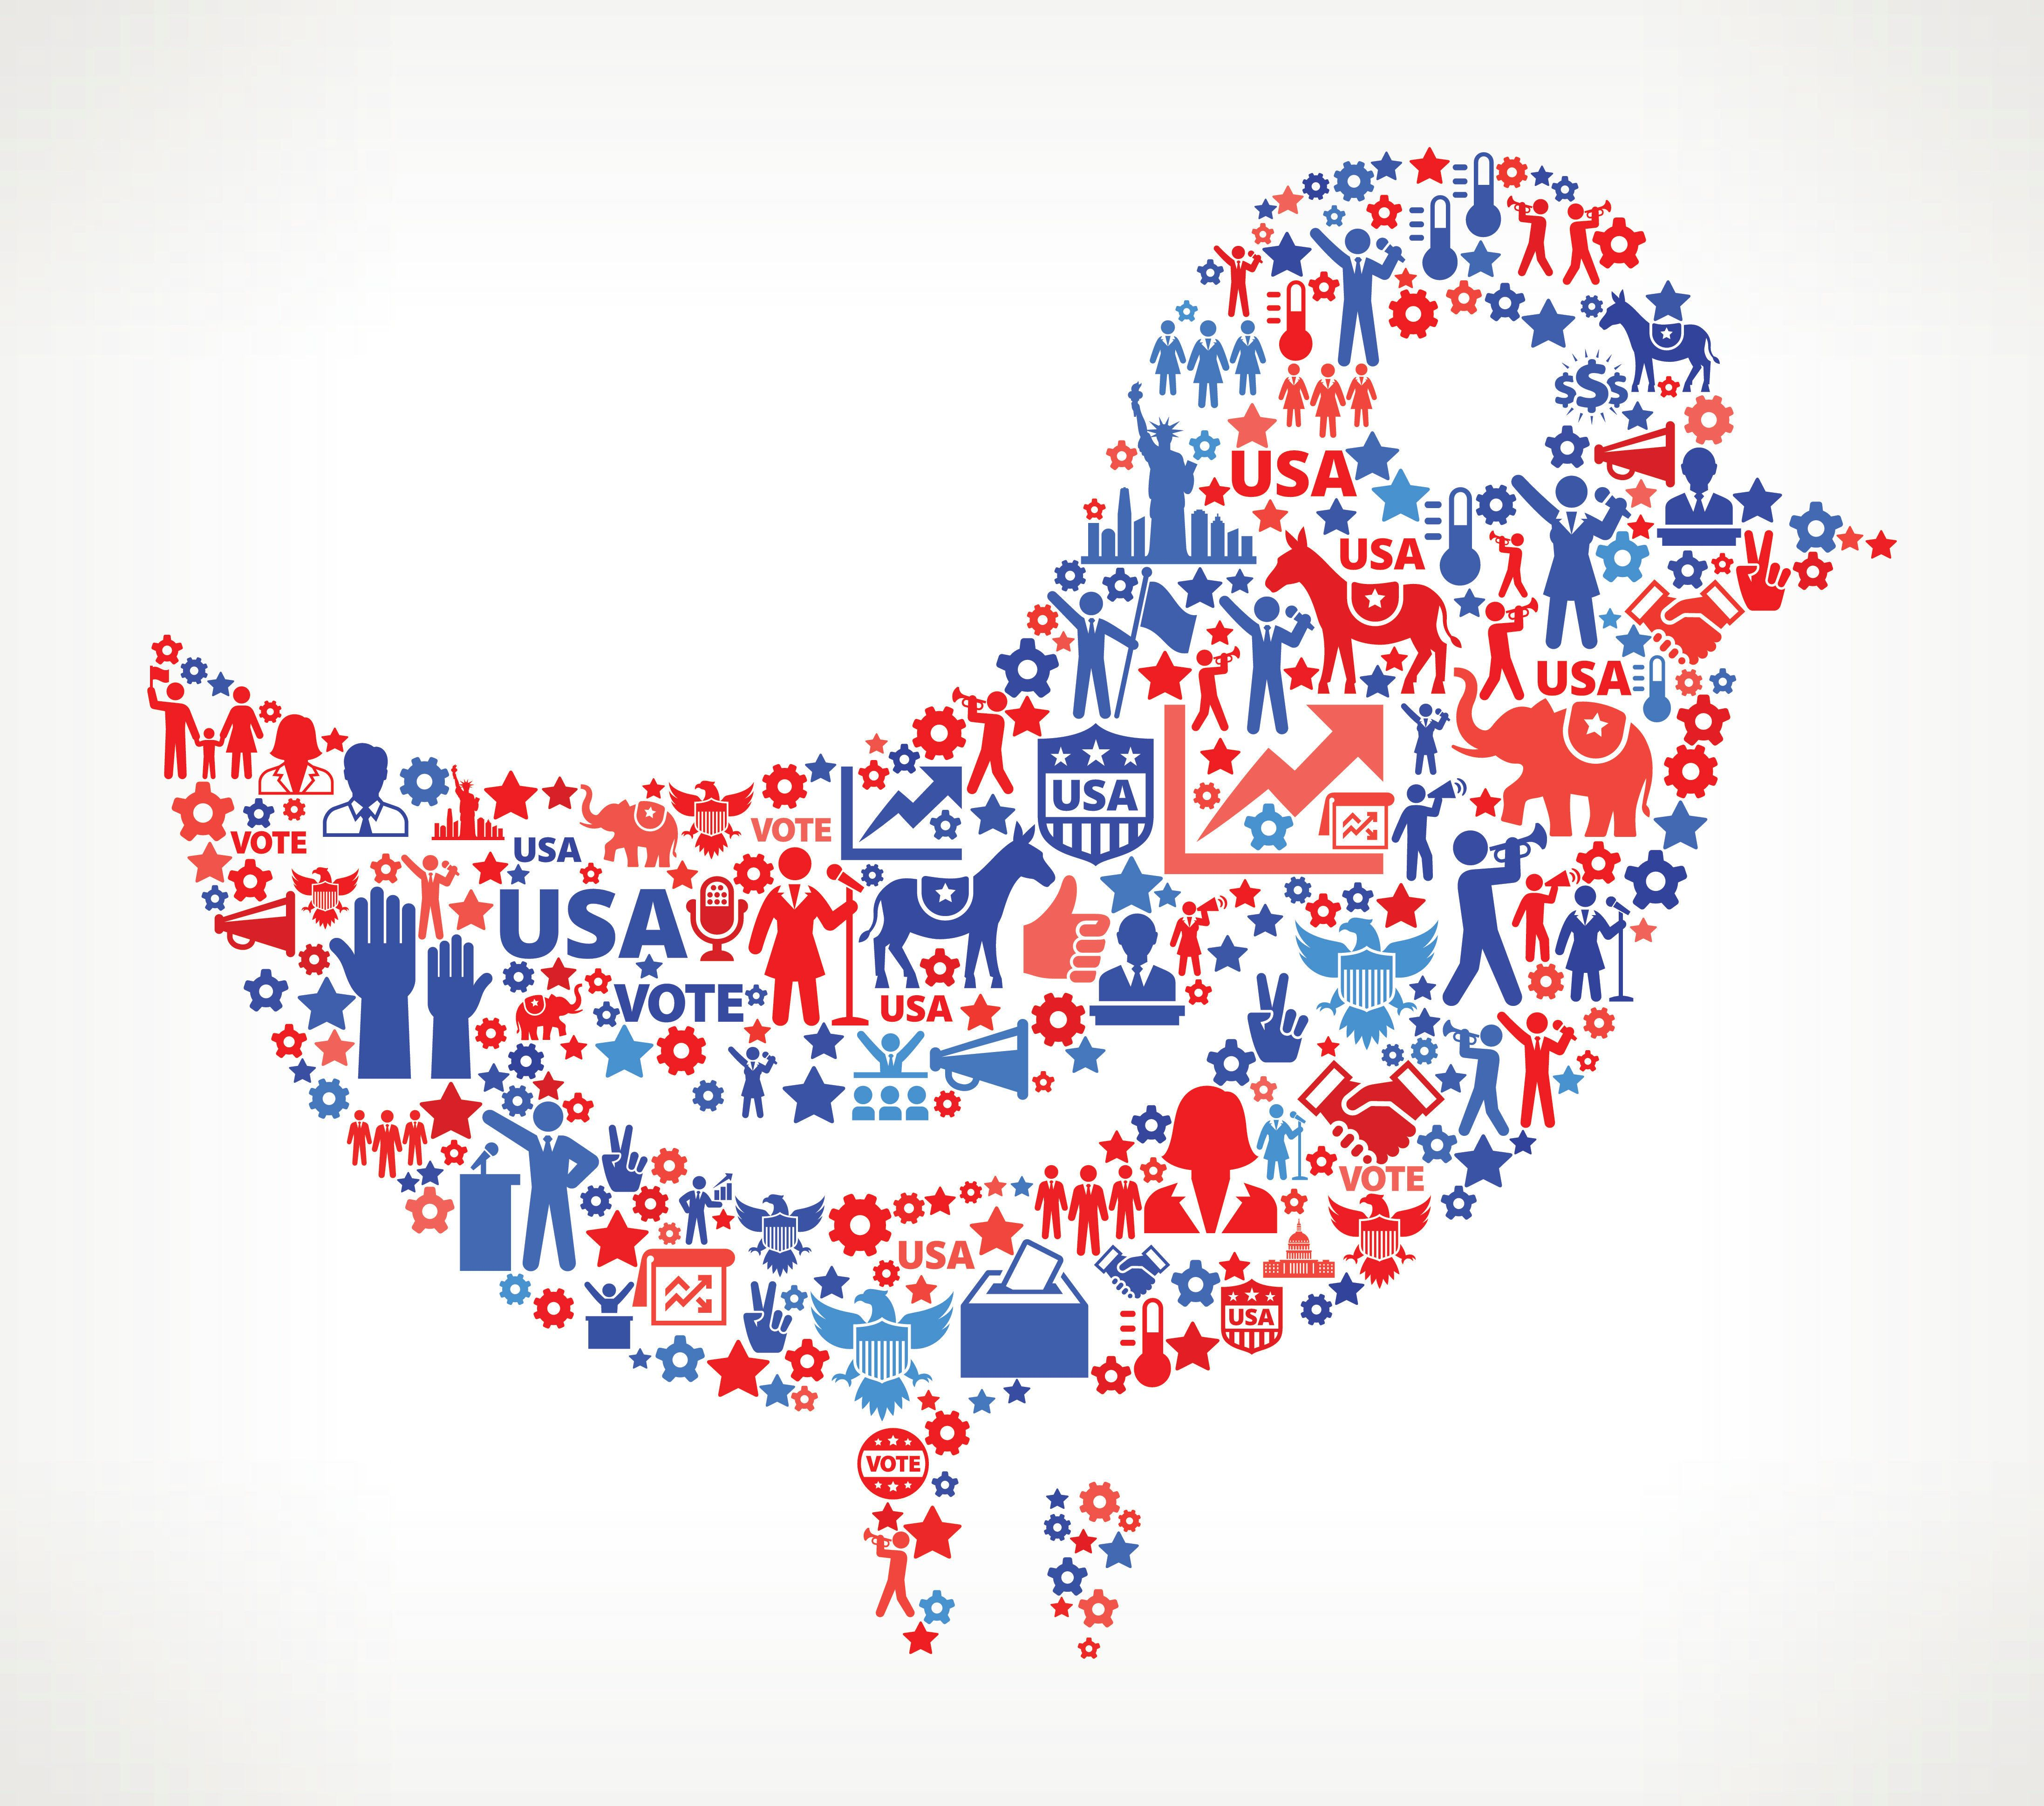 Bird Vote and Elections USA Patriotic Icon Pattern. This 100% vector composition features red and blue vote and elections icon pattern. The icons vary in size and include such election iconography as voting, candidates, leadership, voting ballots, republican and democratic symbols and people participating in the voting process.